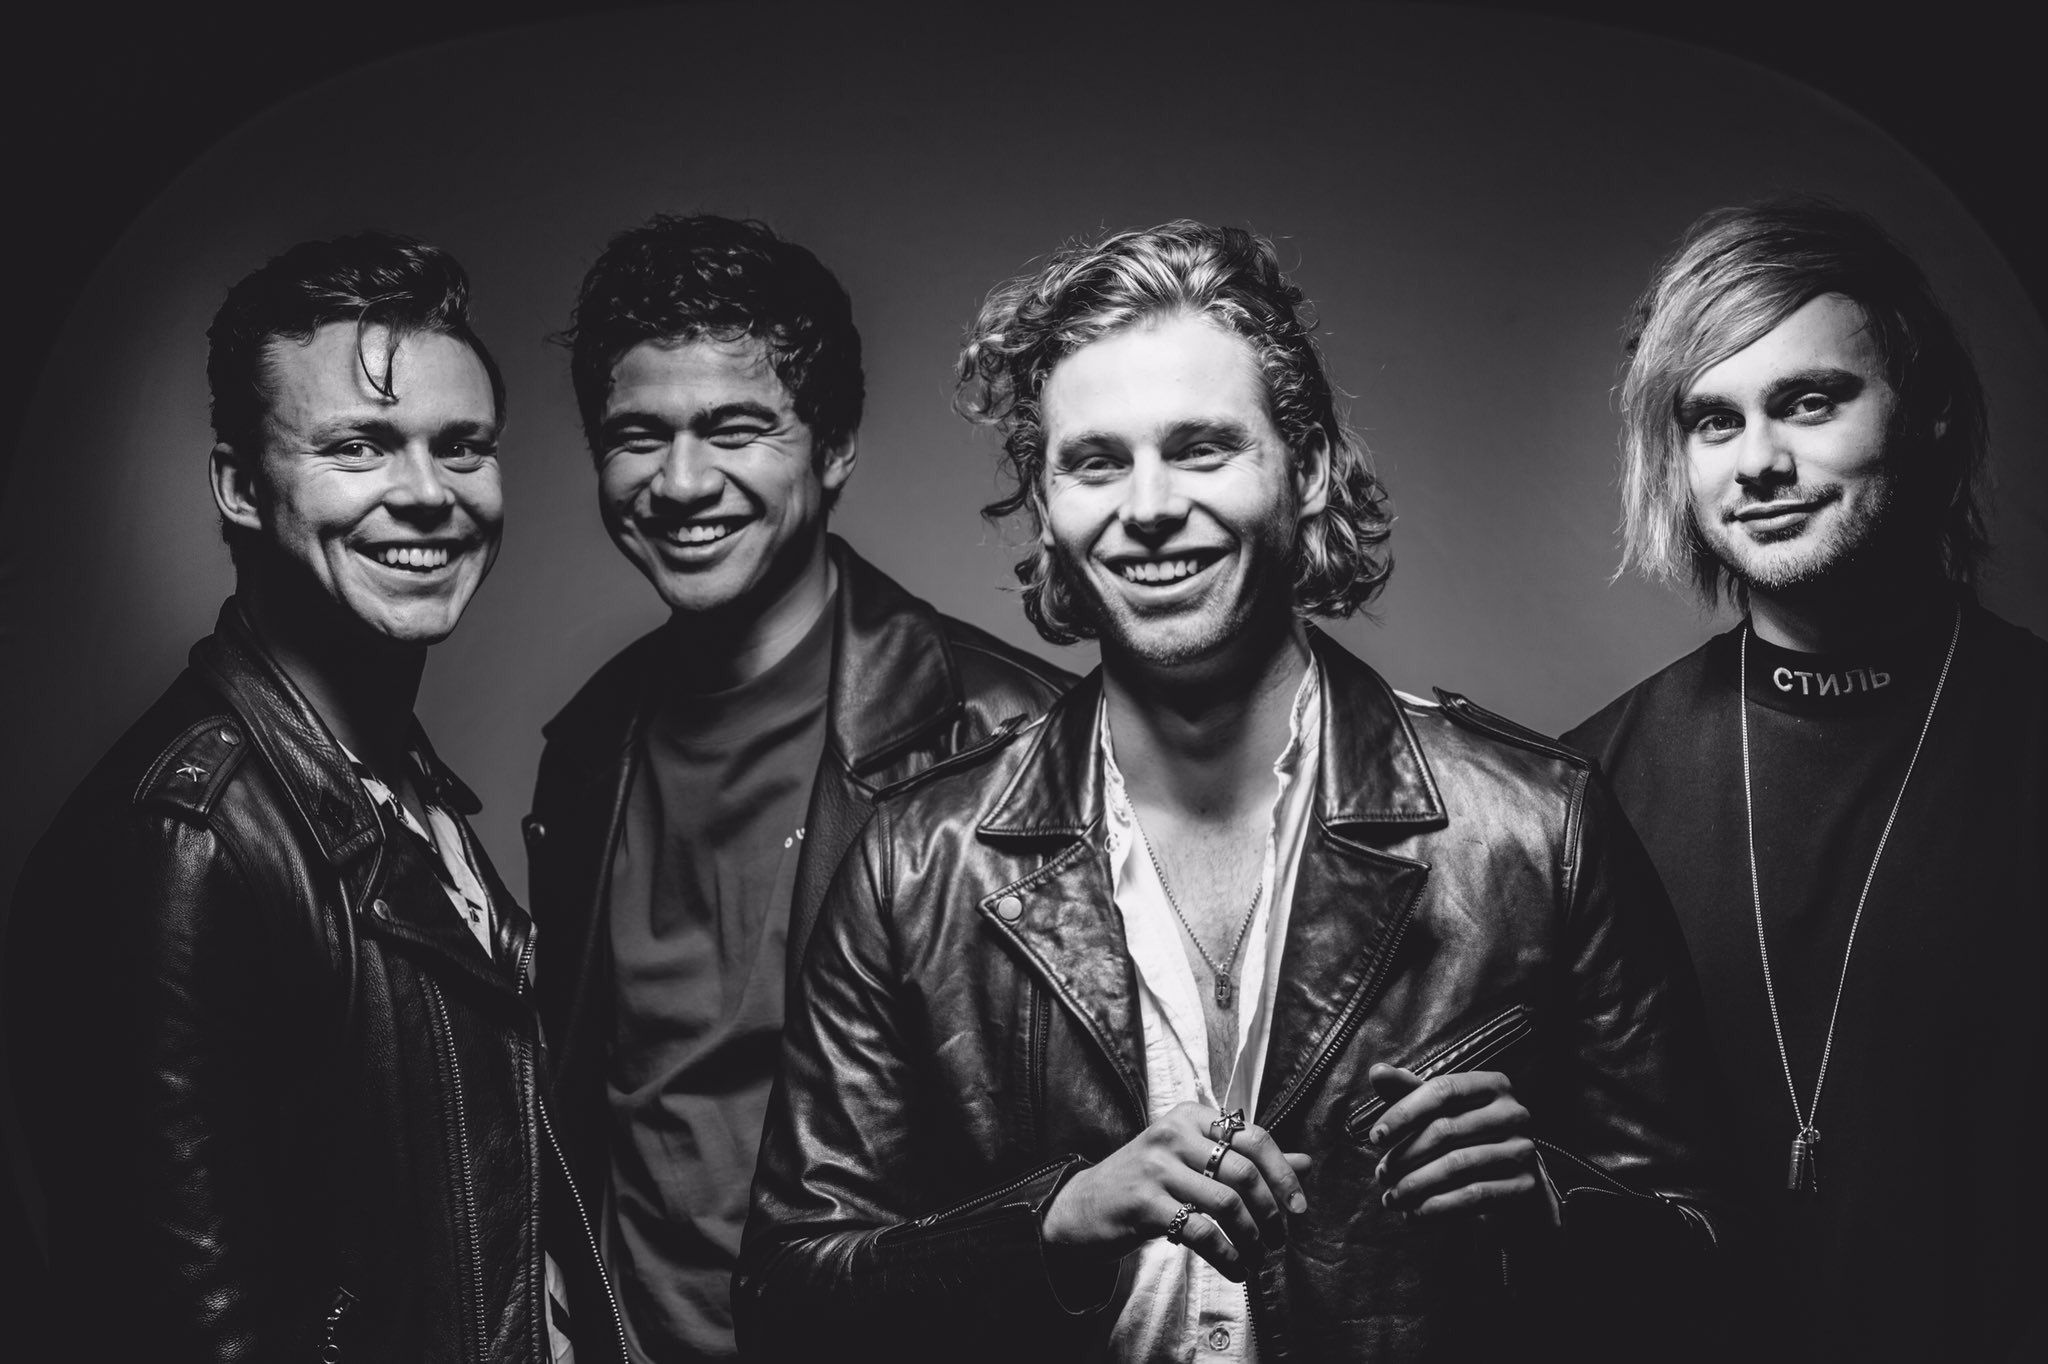 5 Seconds Of Summer Wallpapers - Top Free 5 Seconds Of ...